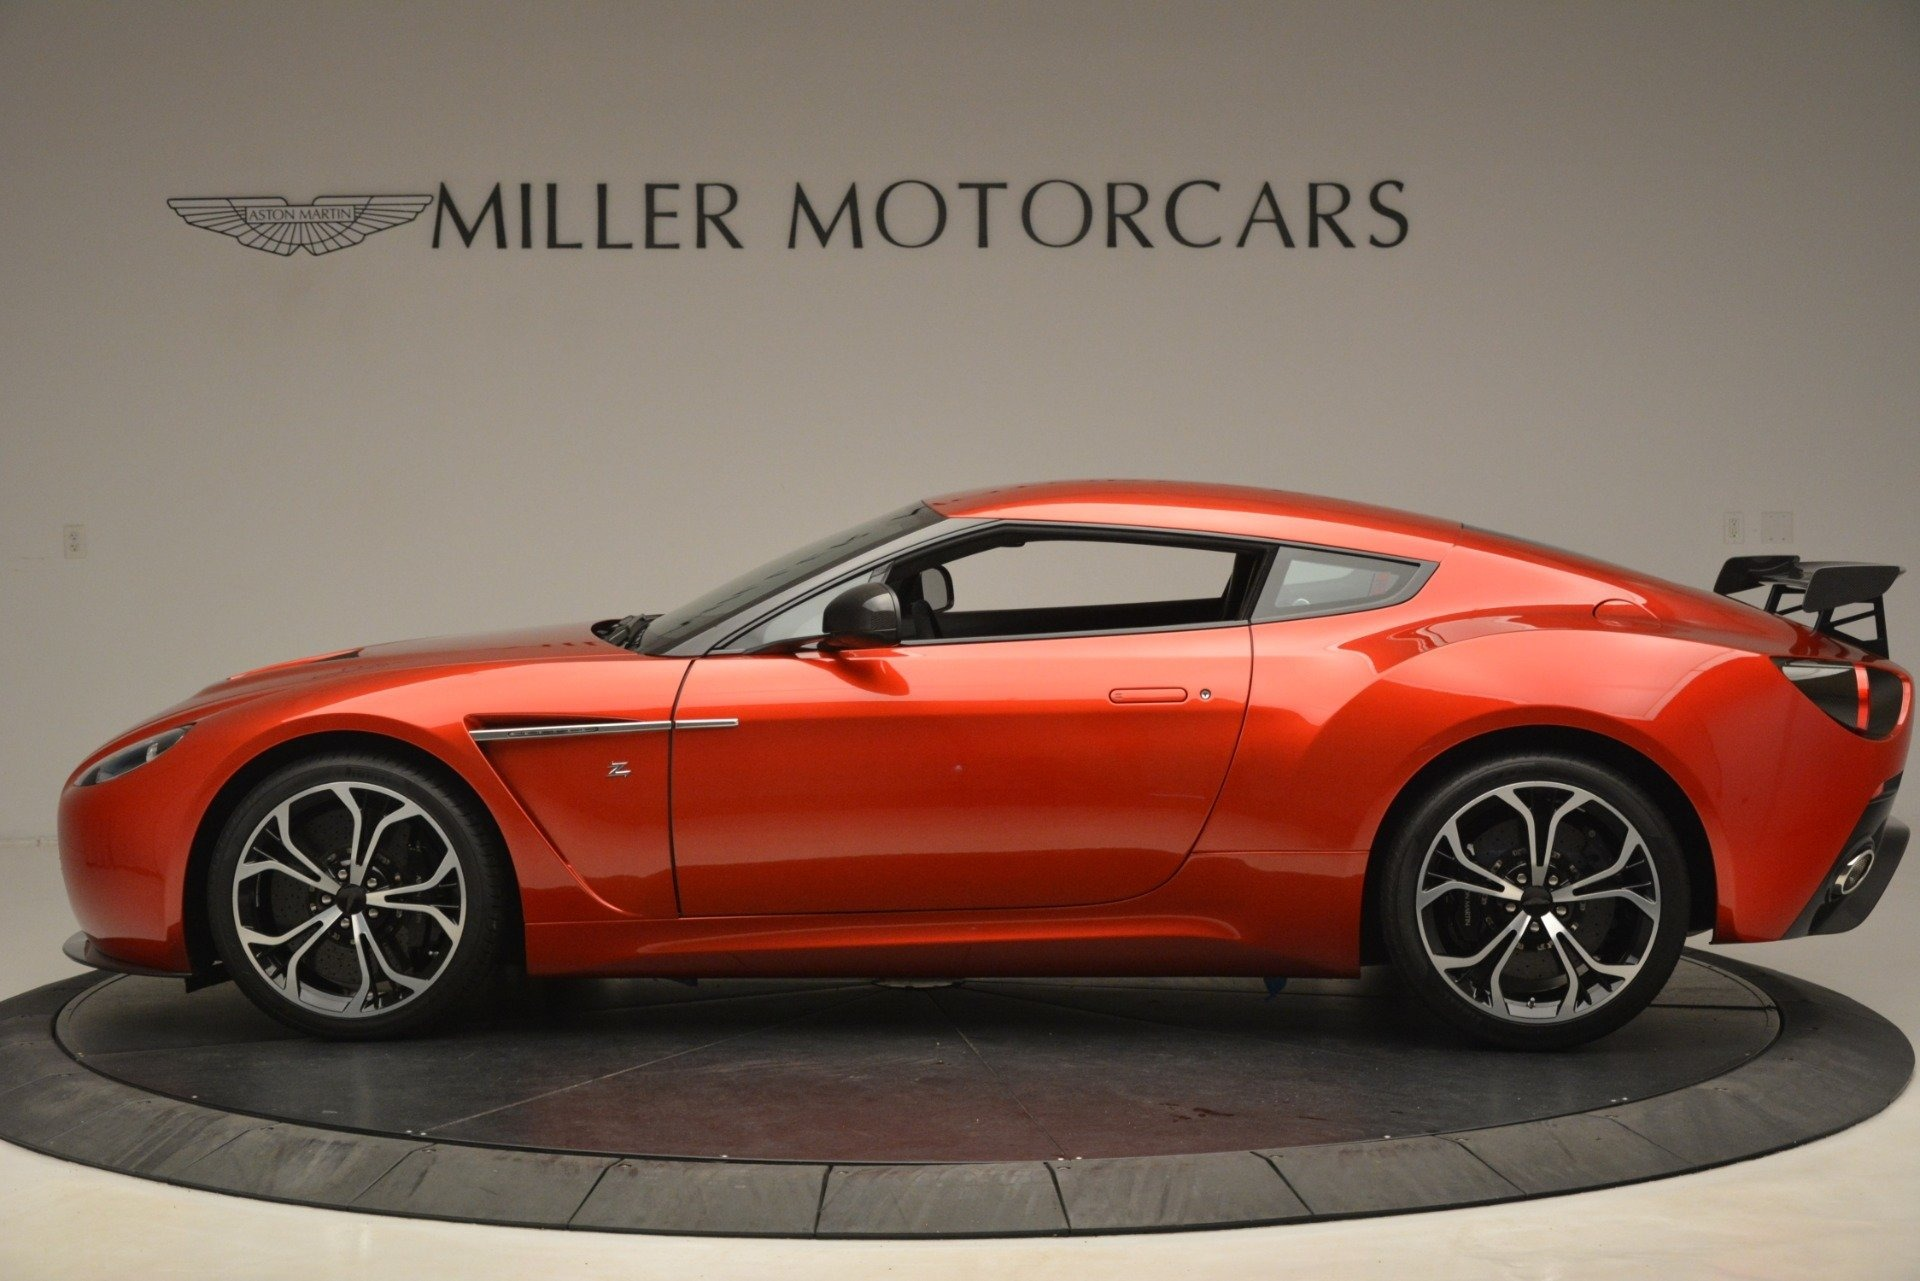 Used 2013 Aston Martin V12 Zagato Coupe For Sale In Westport, CT 3181_p2